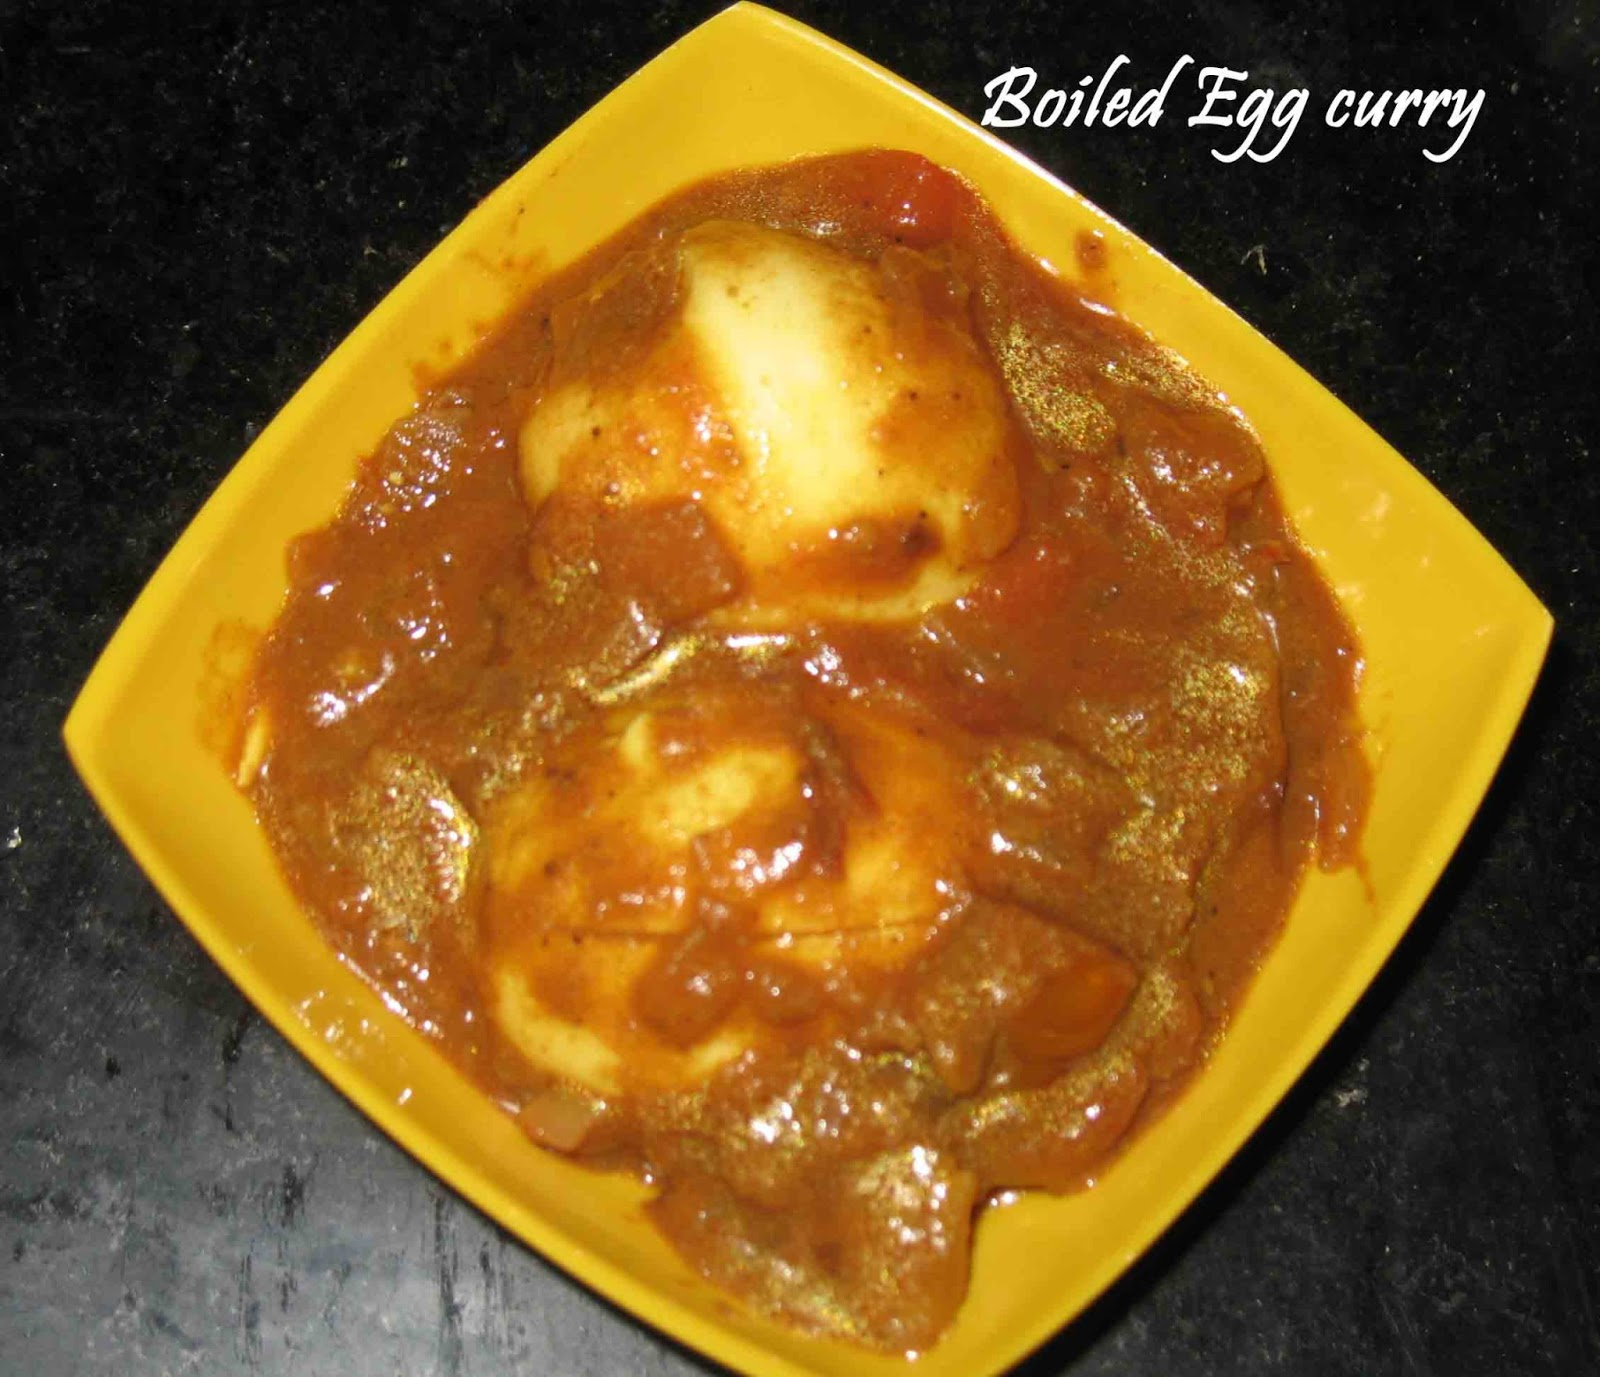 Boiled Egg curry - Sujitha Easycooking